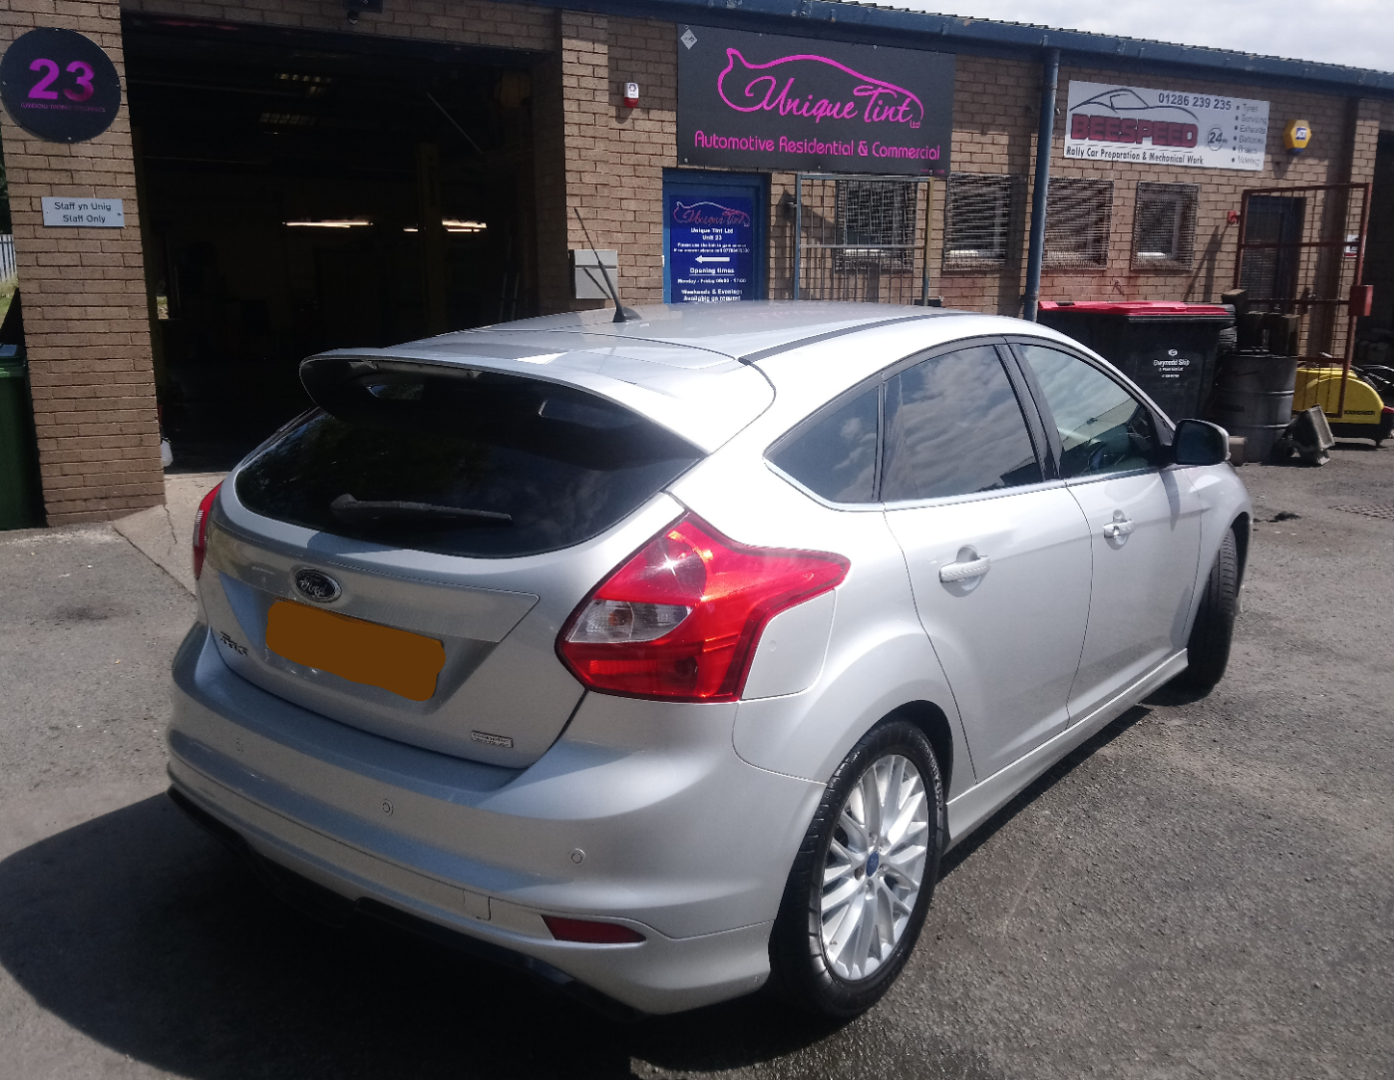 Ford Focus Tinted To Factory Standard Window Tinting Services In North Wales By Unique Tint Ltd